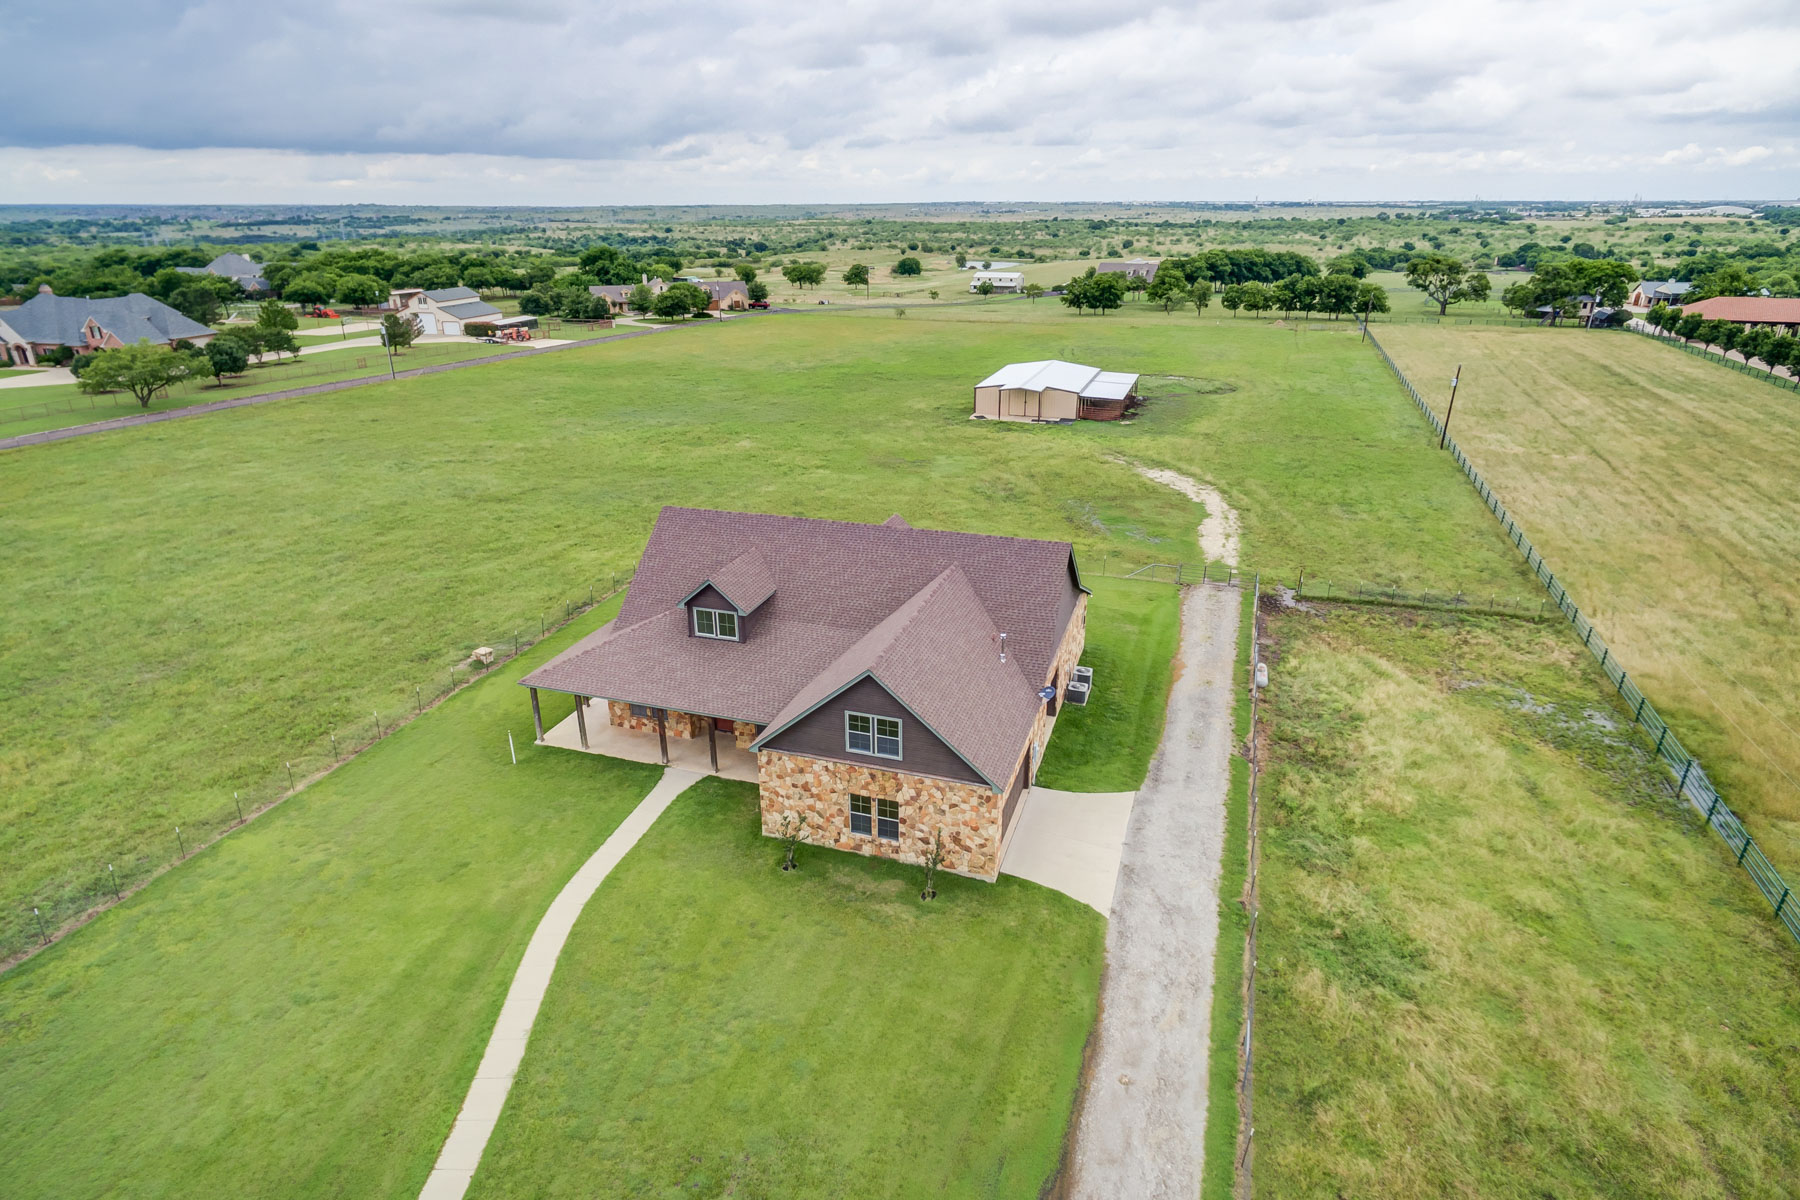 Single Family Home for Sale at Split Level Ranch on over 7.5 acres 9500 Park Drive Fort Worth, Texas, 76179 United States